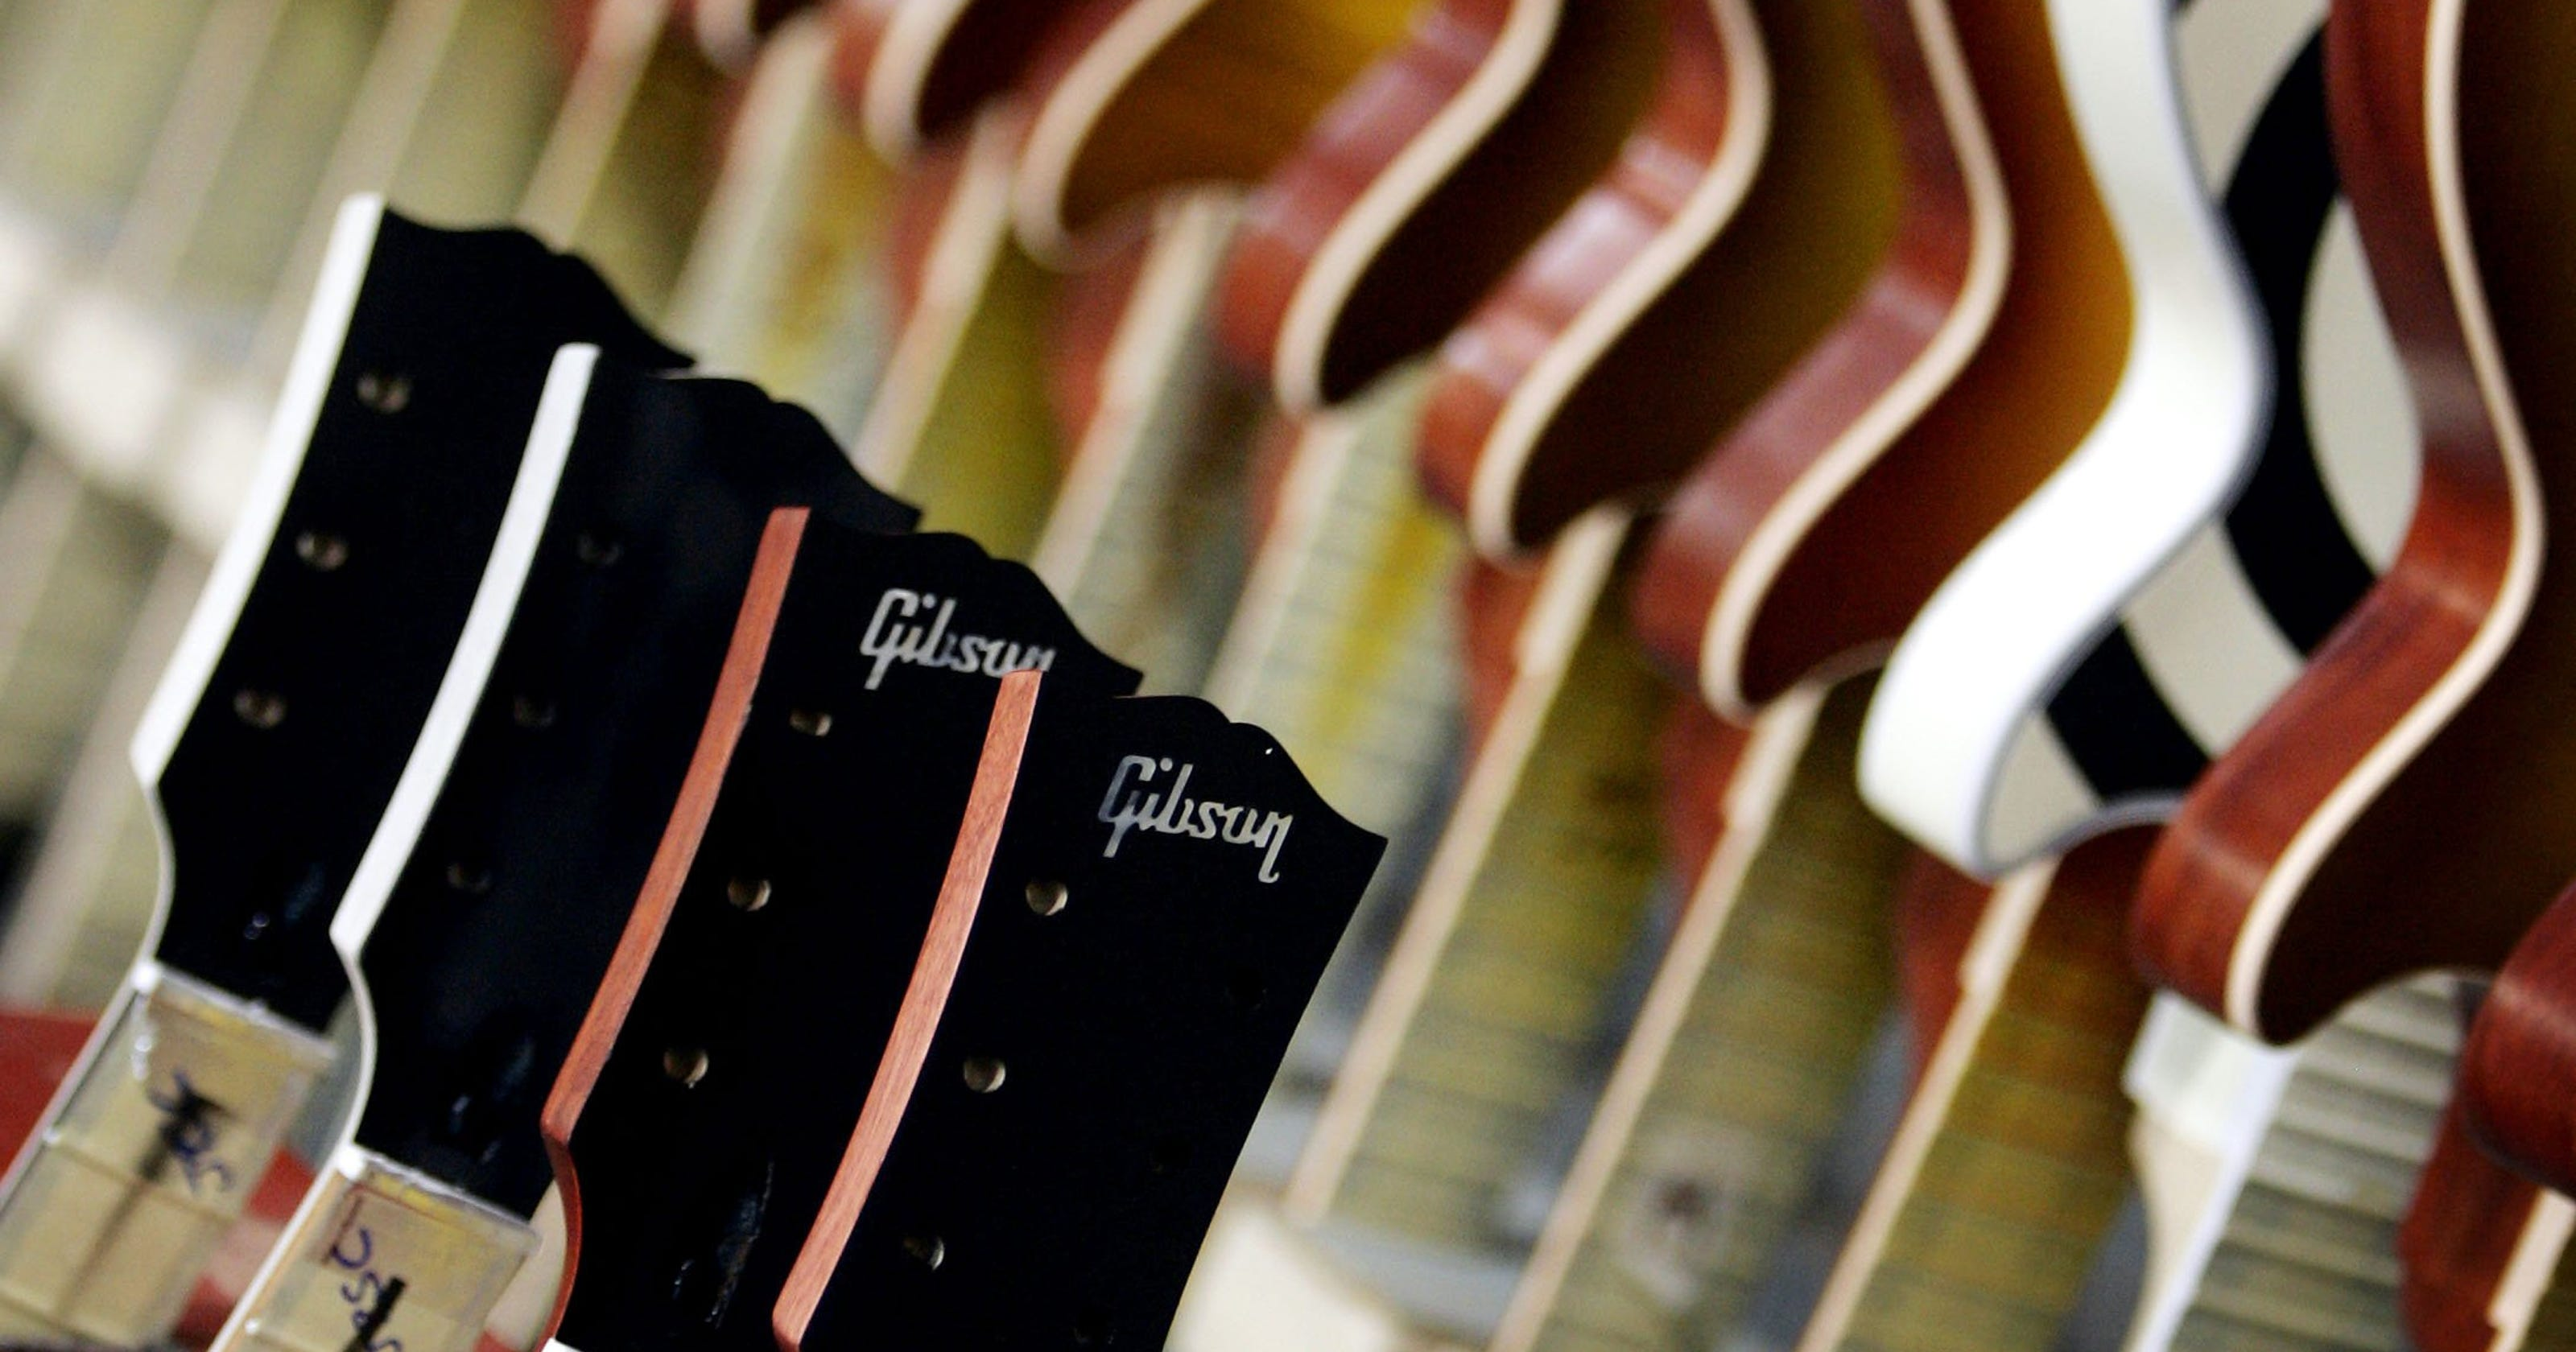 Gibson bankruptcy: What went wrong, and what lies ahead for